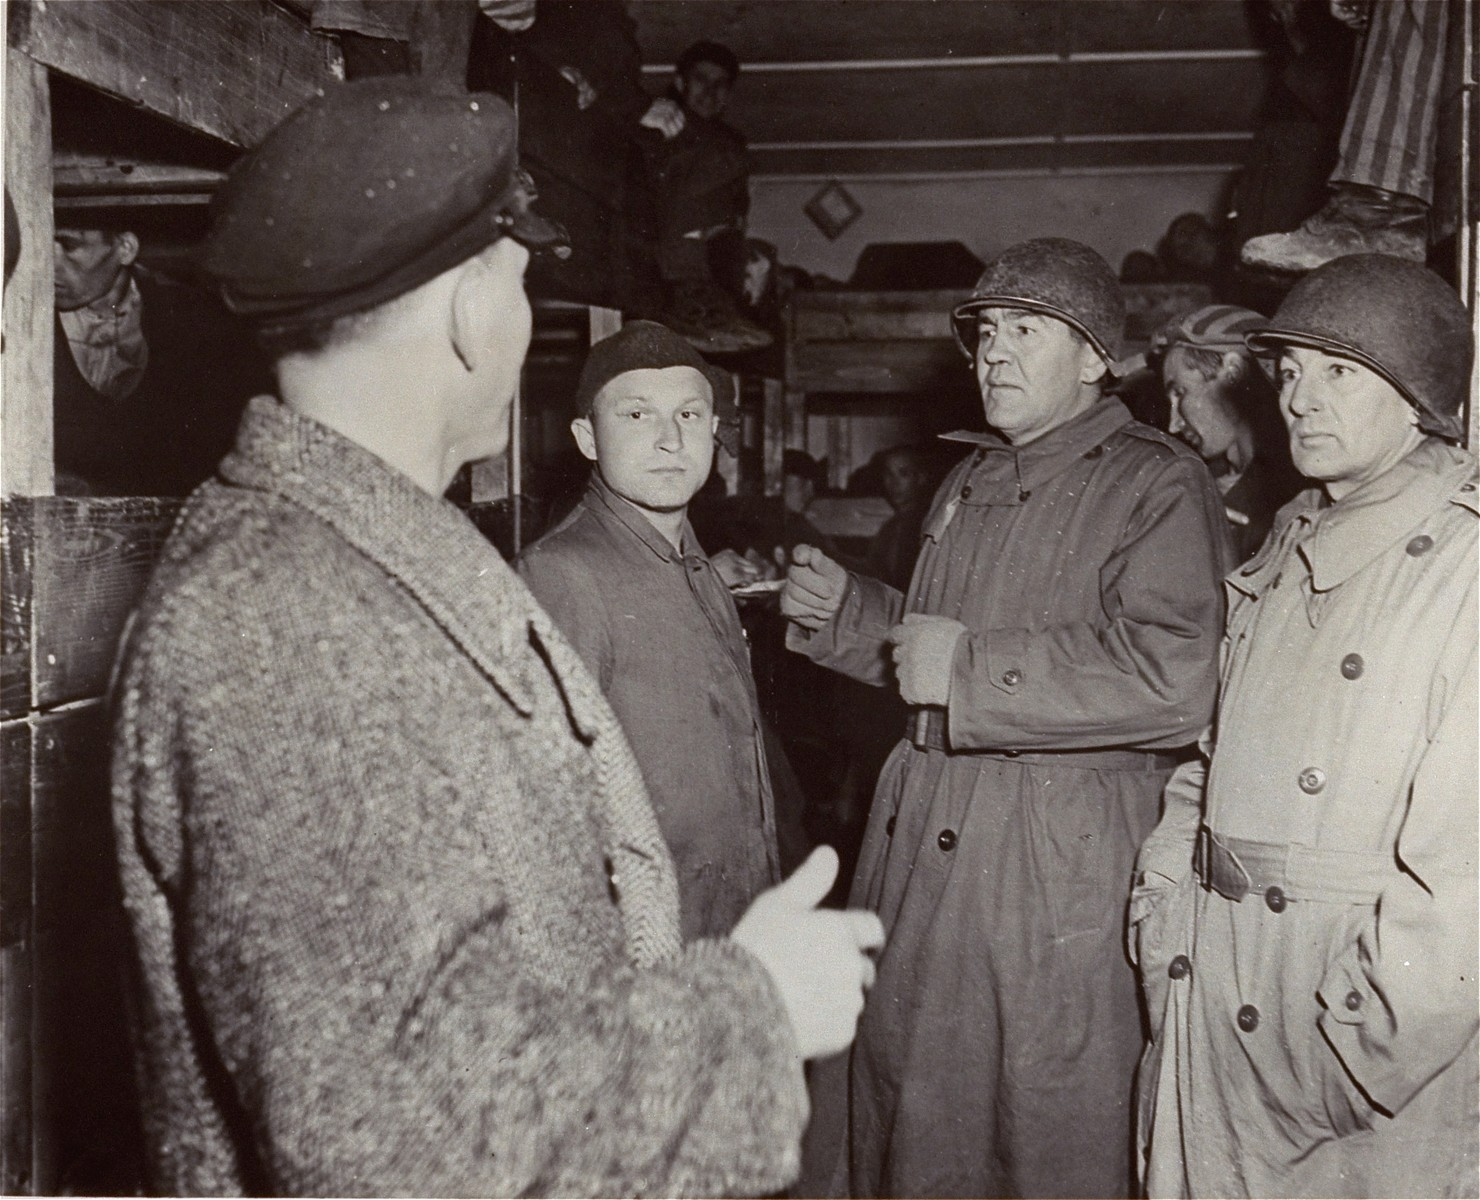 U.S. Representative John M. Vorys (R.-Ohio), (center) a member of a U.S. Congressional committee investigating German atrocities, views overcrowded conditions in the barracks which led to the deaths of many of the inmates from disease.